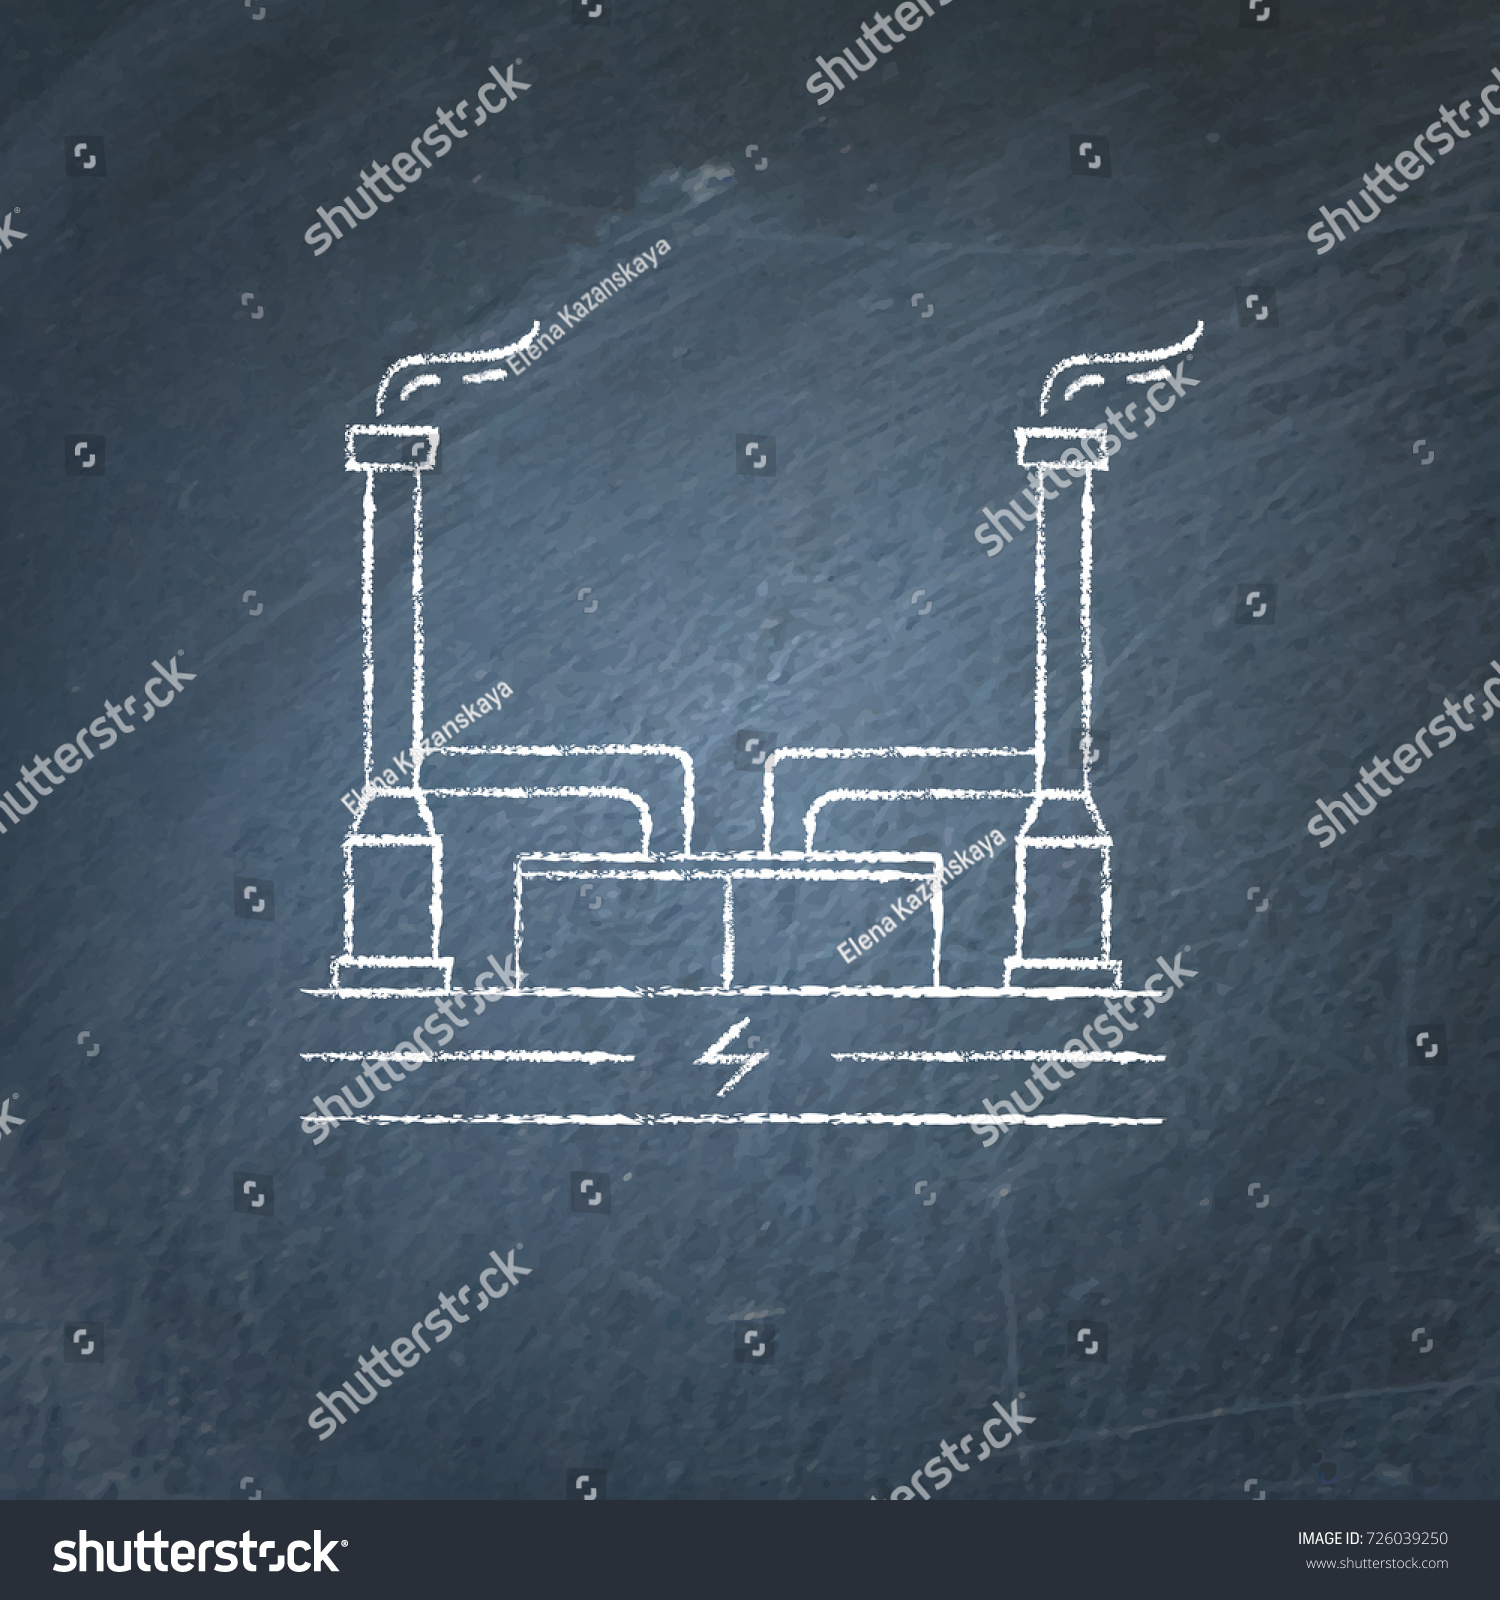 Outline Geothermal Power Plant Icon Sketch Stock Vector Royalty Schematic Diagram On Chalkboard Alternative Renewable Energy Concept Symbol Chalk